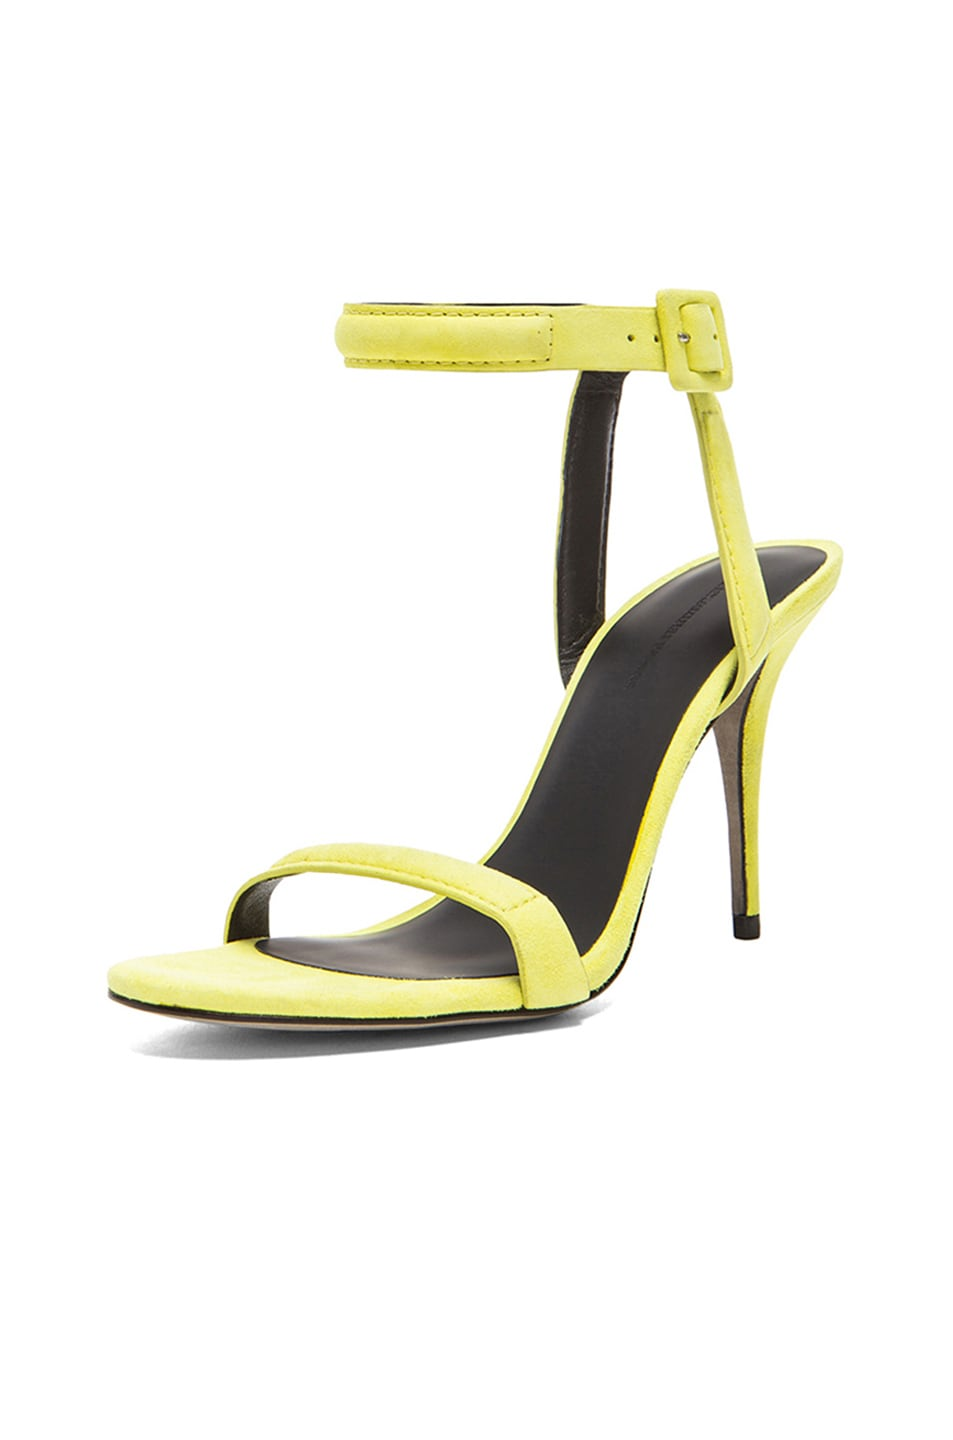 Image 2 of Alexander Wang Antonia Suede Ankle Strap Heels in Citrine